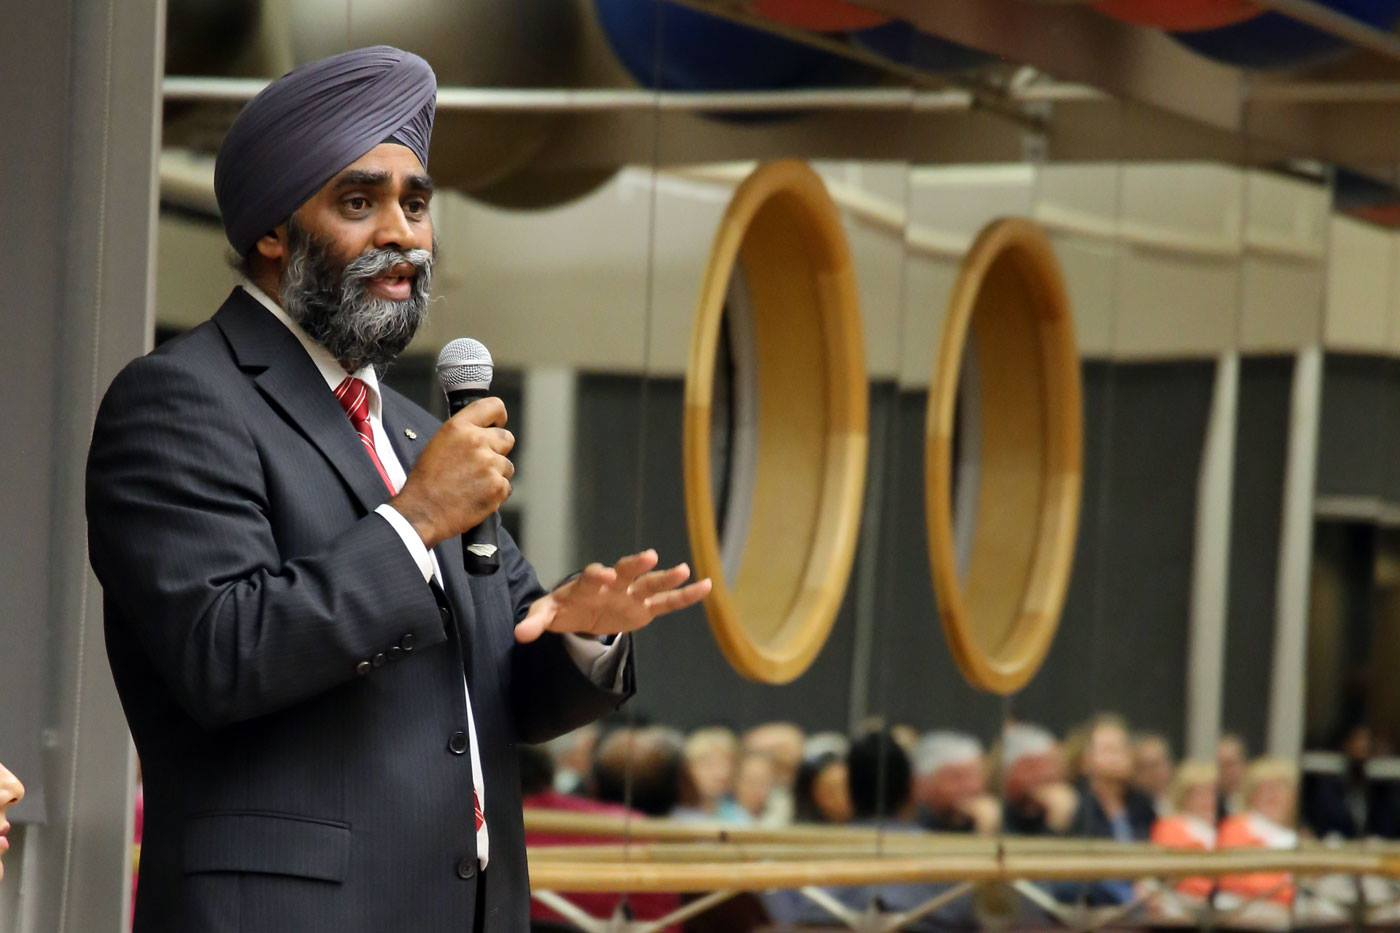 Harjit Sajjan, Canada's defence minister (Photo from Sajjan's official Facebook page)